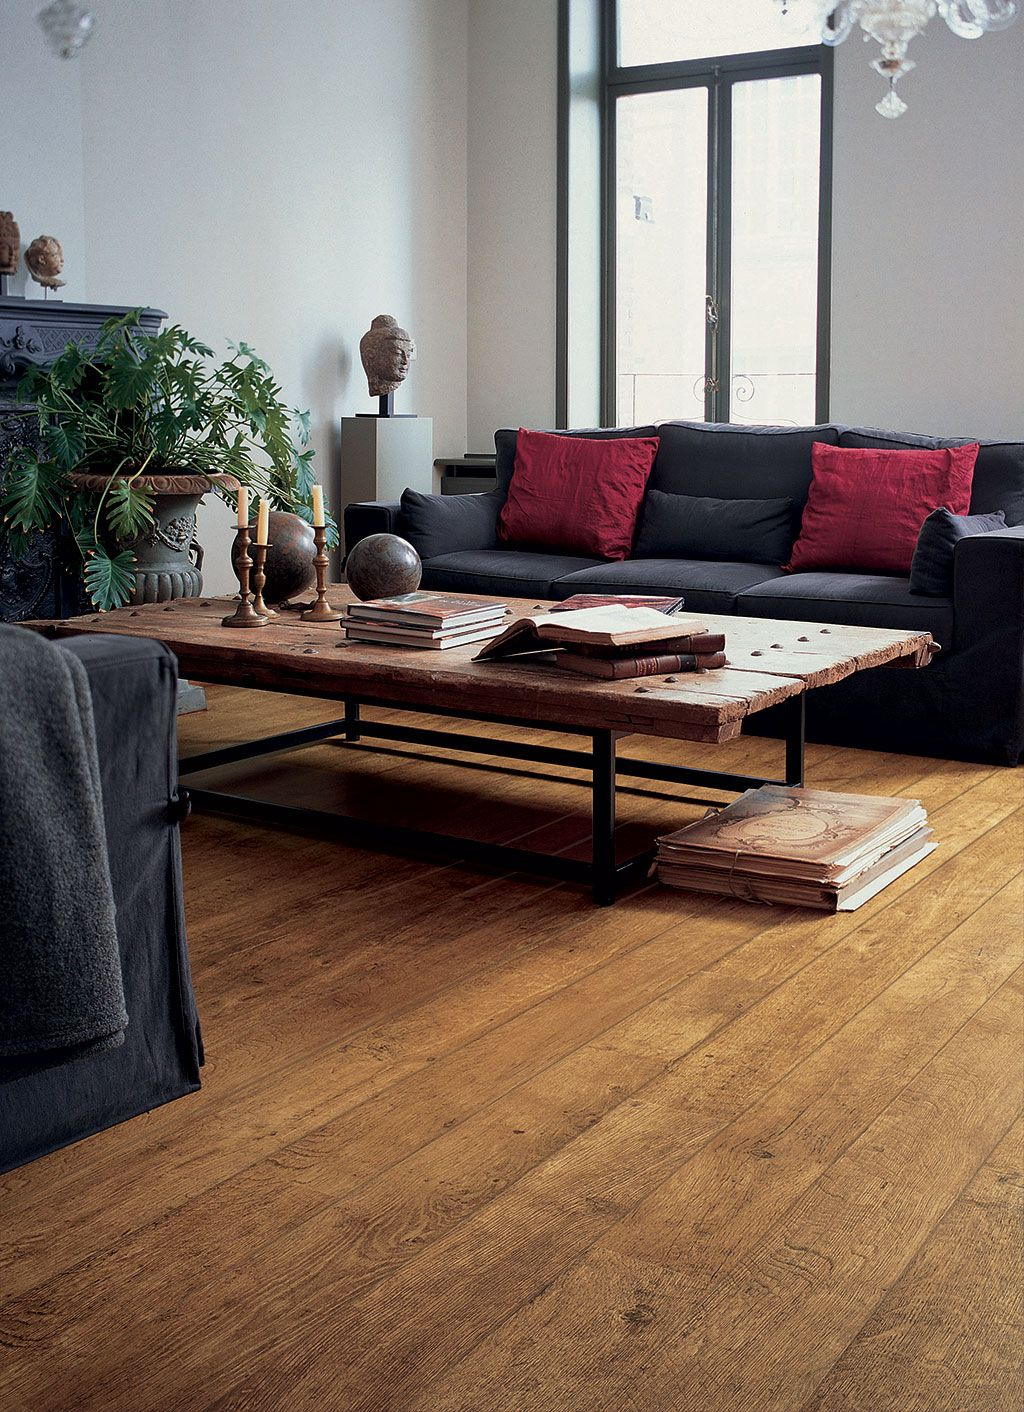 How To Choose The Ideal Living Room Floor Our Laminate